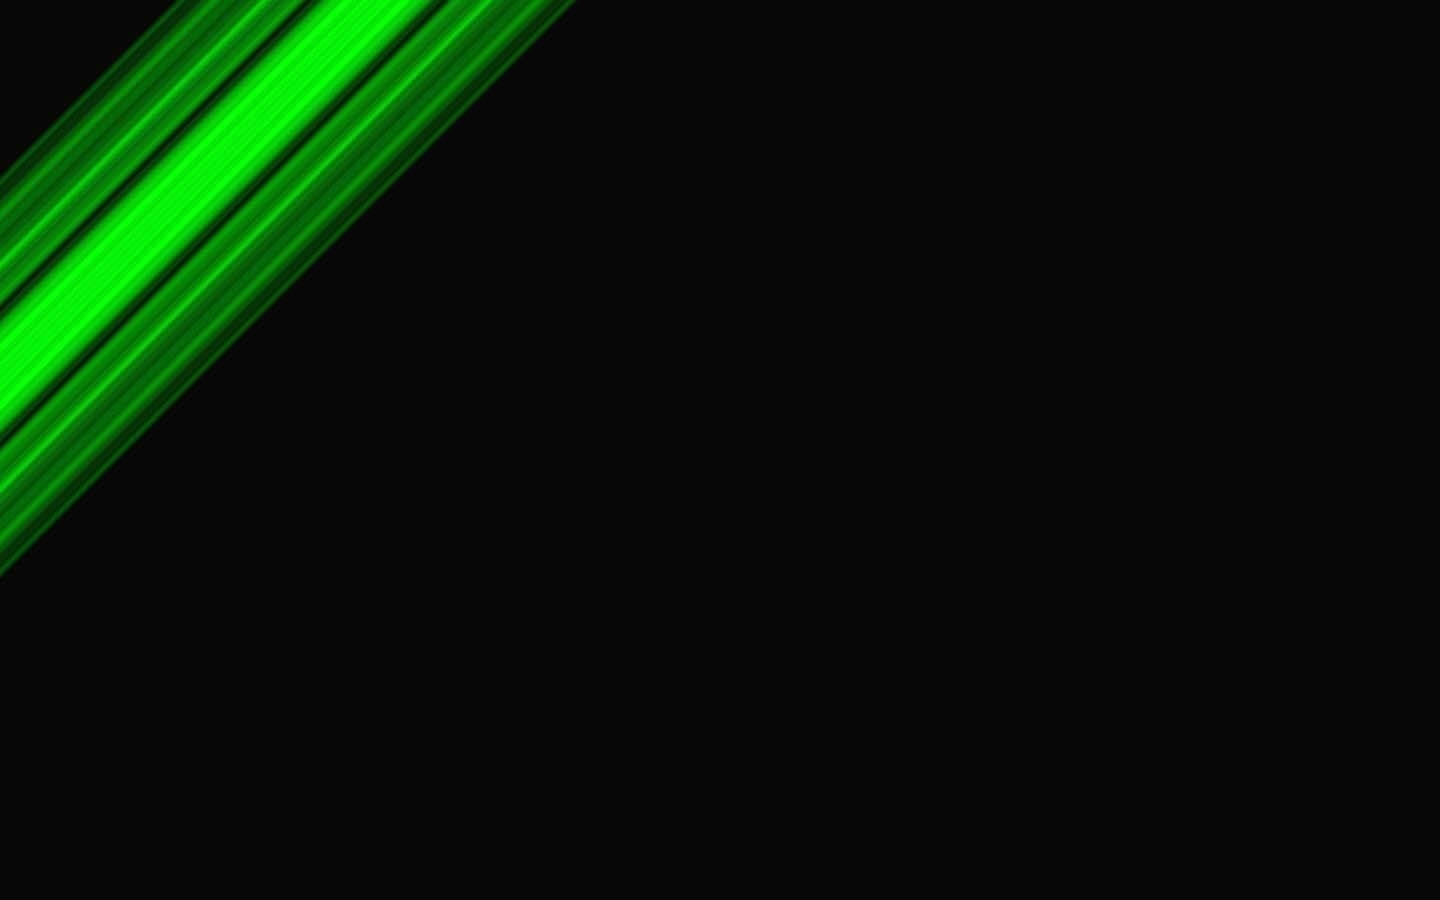 black and green backgrounds - wallpaper cave